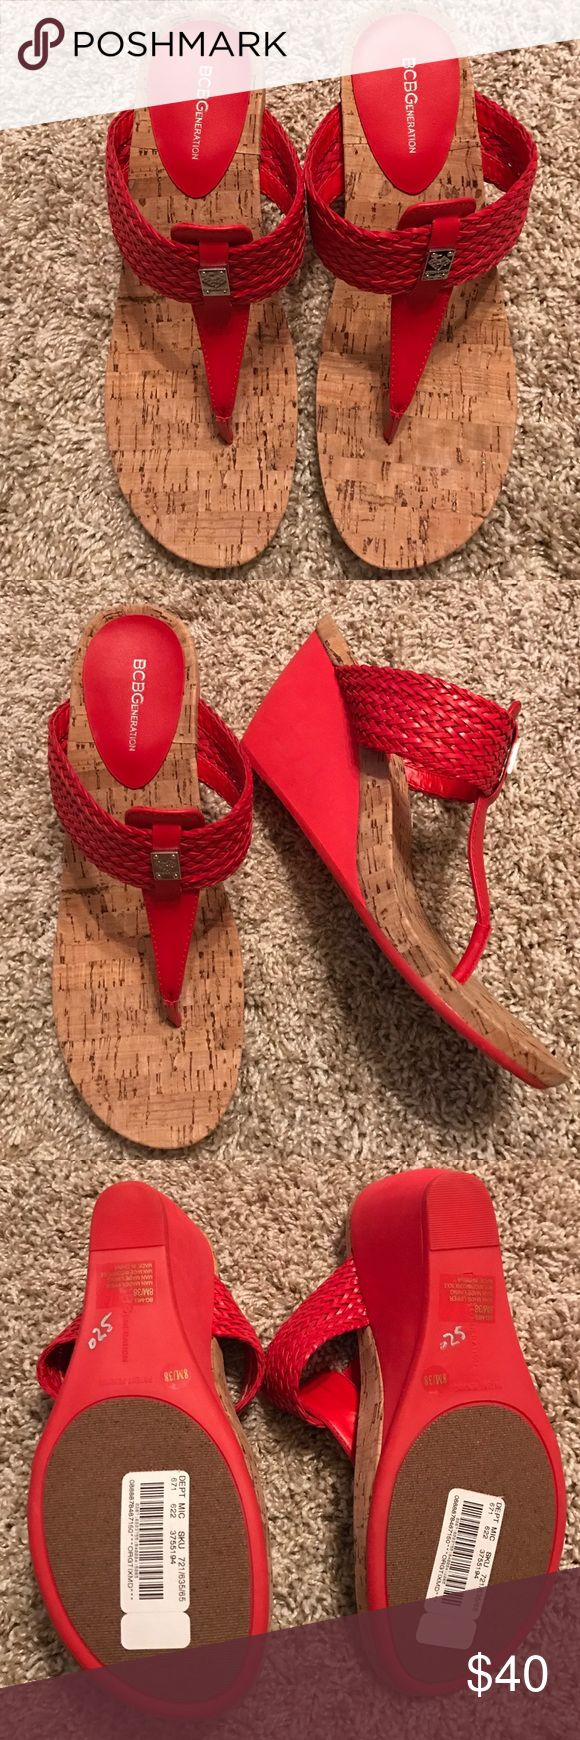 Brand New BCBG generation red wedge shoe size 8 Brand New BCBG generation red wedge shoe. 3 1/4inch wedge. Super cute! Dressy or casual. Size 8. BCBGeneration Shoes Wedges